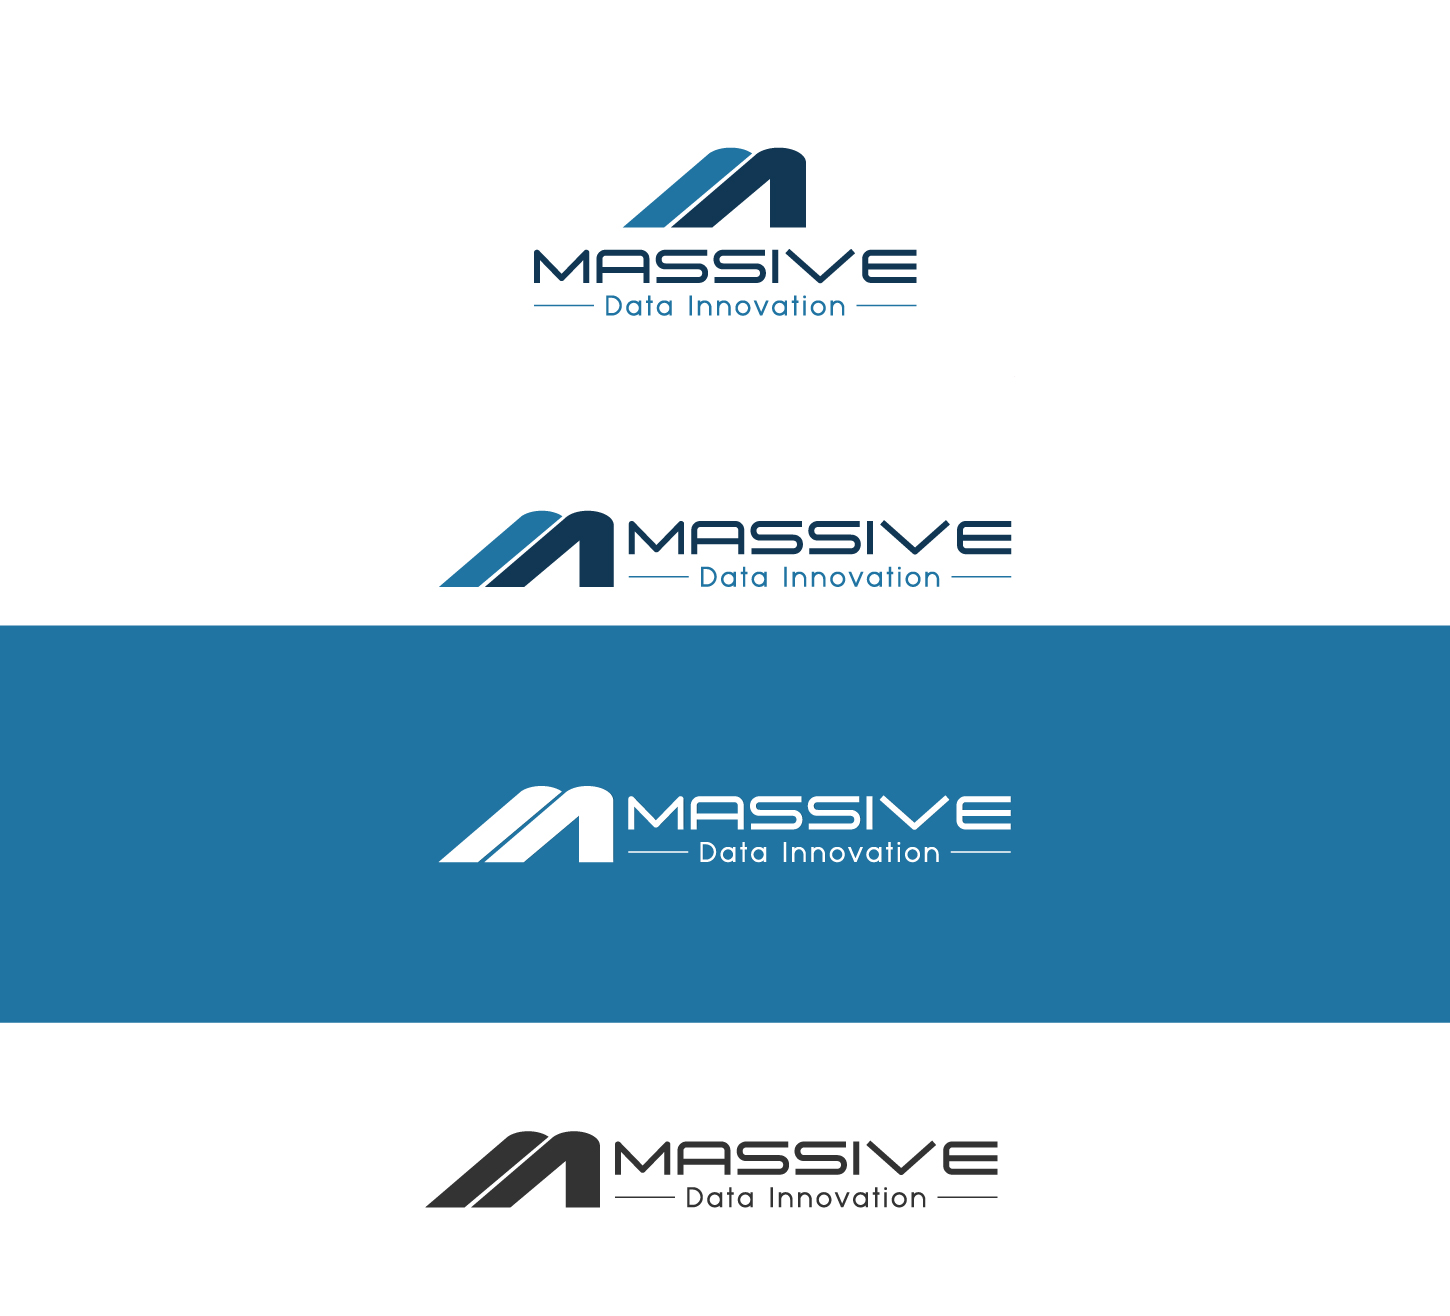 Logo Design by Sami Baig - Entry No. 502 in the Logo Design Contest MASSIVE LOGO.